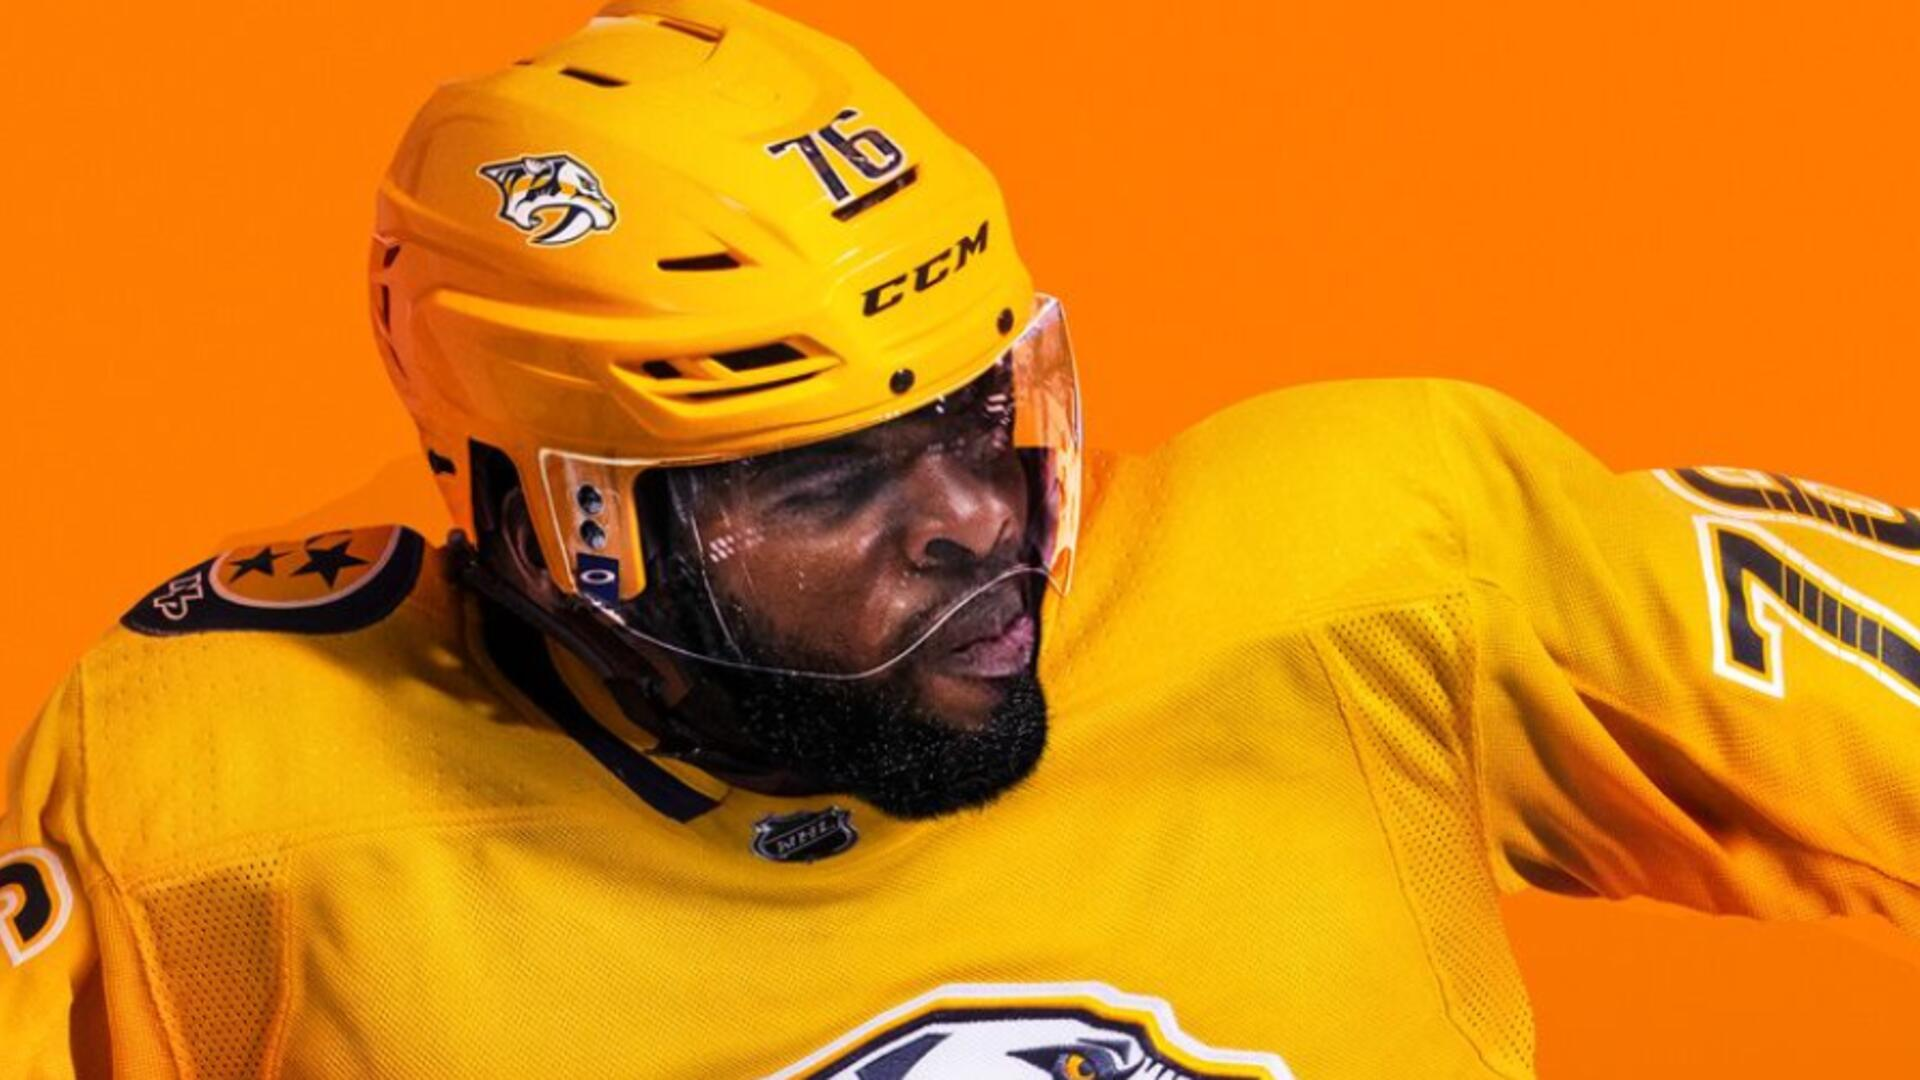 NHL 19 Announced for PS4, Xbox One, With Deeper Character Customization and Outdoor Rinks